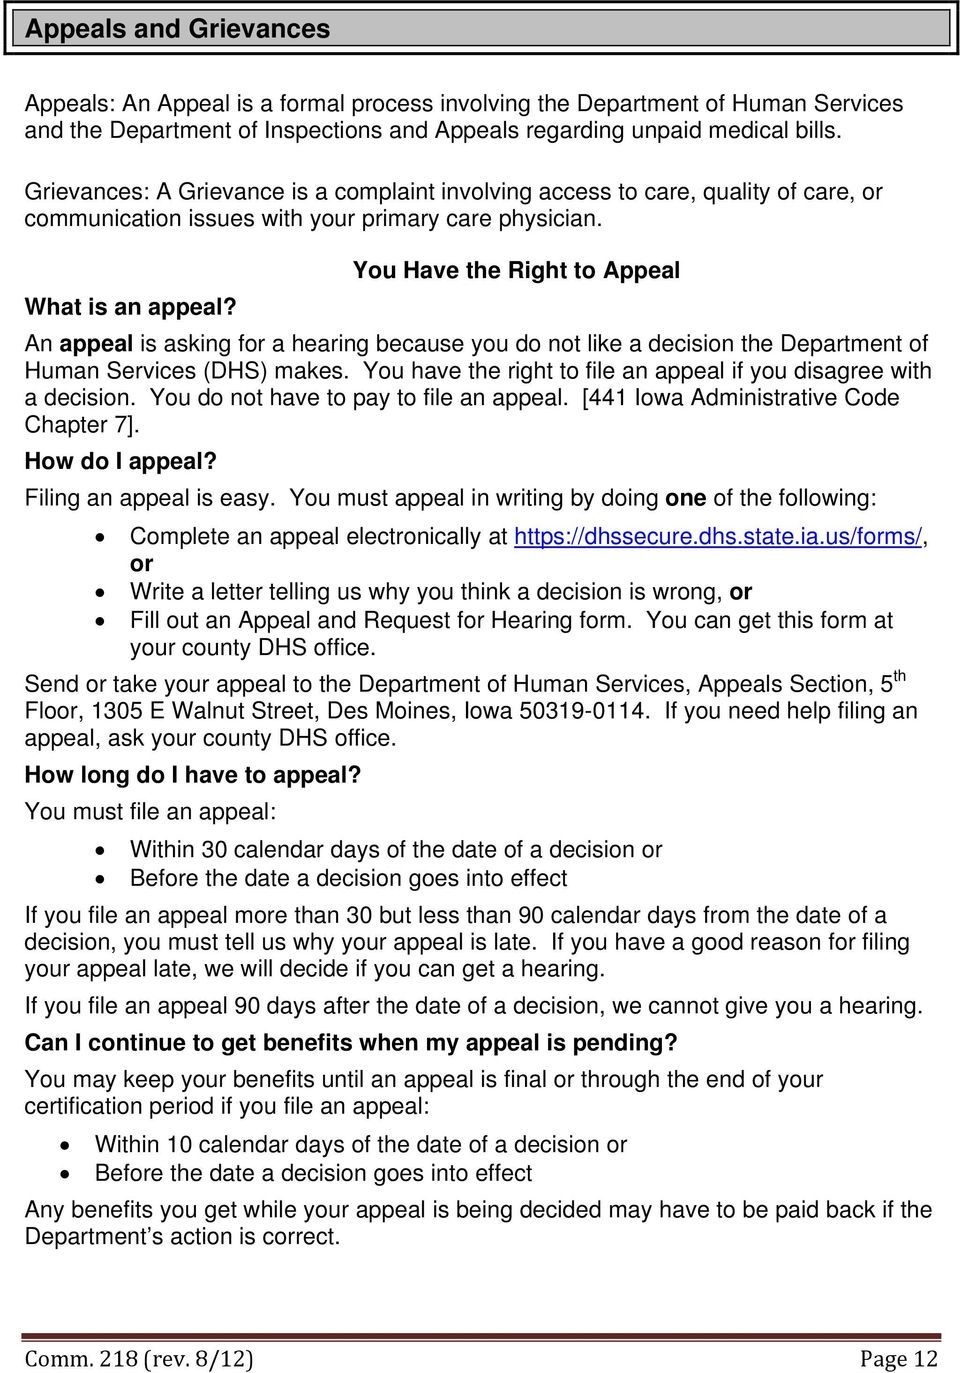 An appeal is asking for a hearing because you do not like a decision the Department of Human Services (DHS) makes. You have the right to file an appeal if you disagree with a decision.